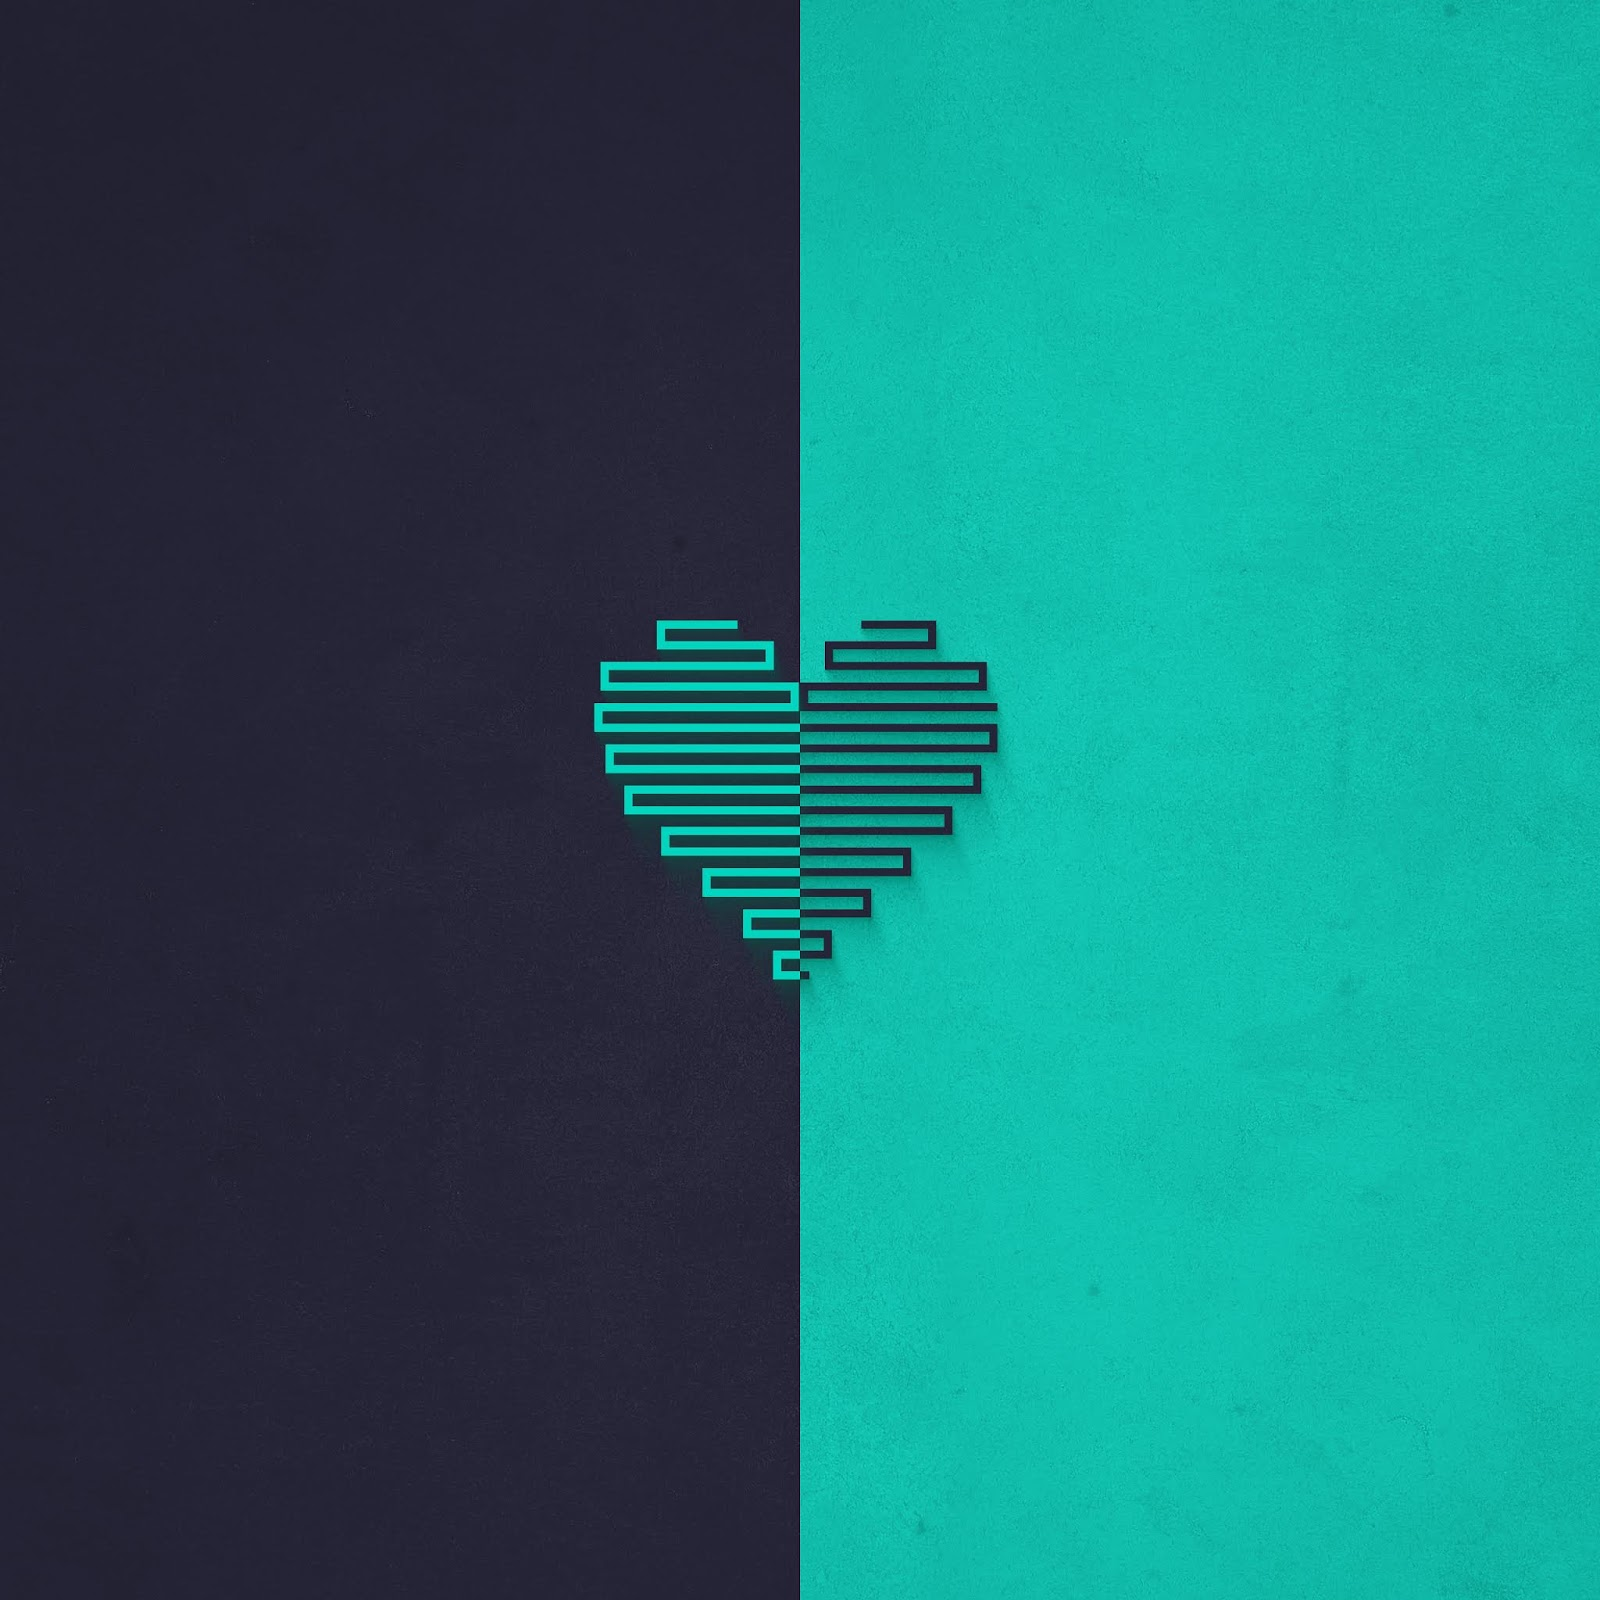 Love mobile wallpapers